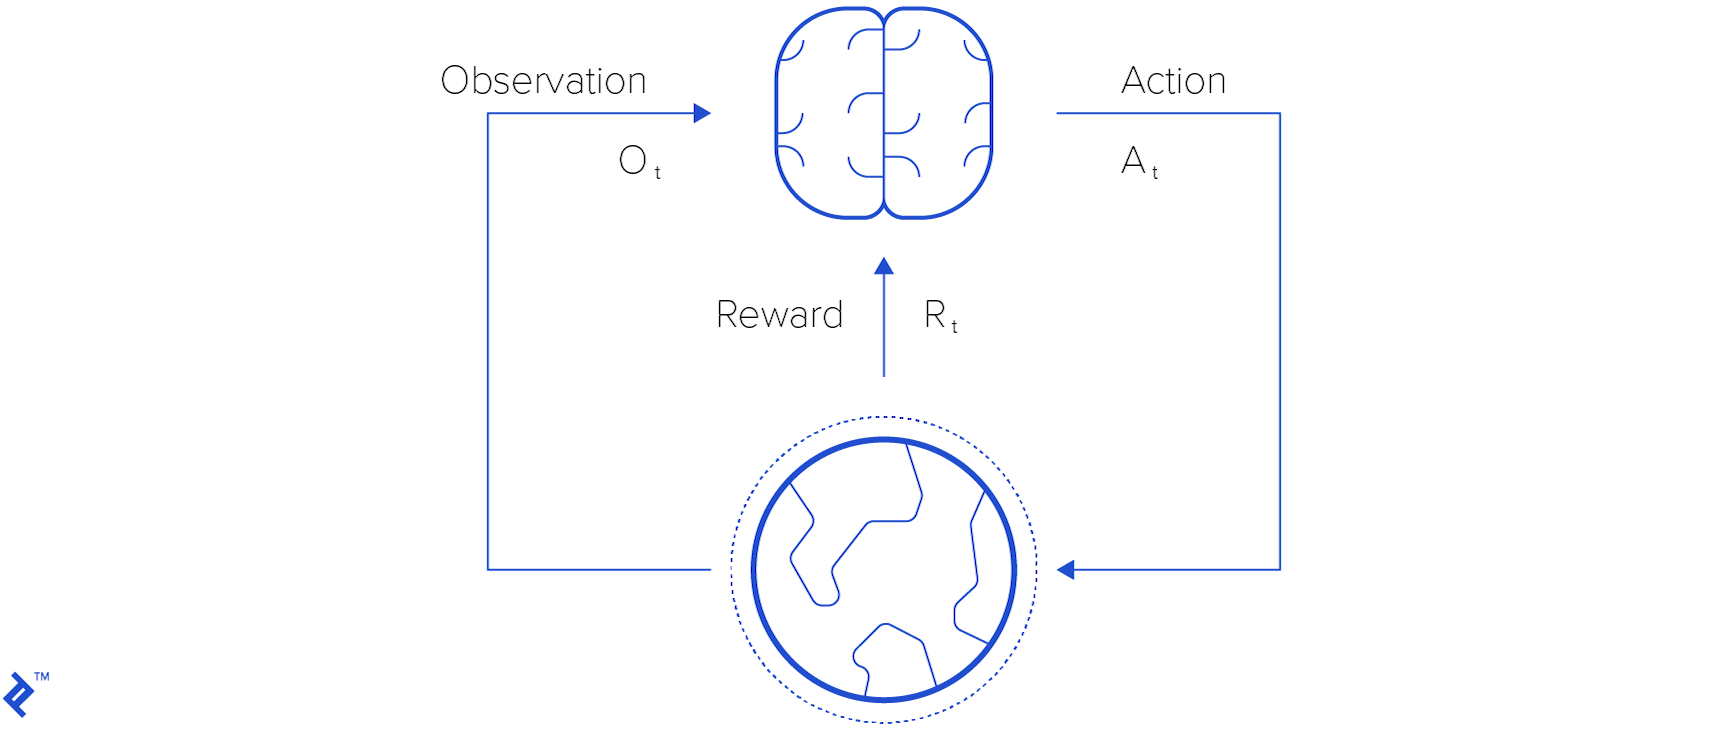 A neural network agent decides which action to take at any step based on observations and rewards.